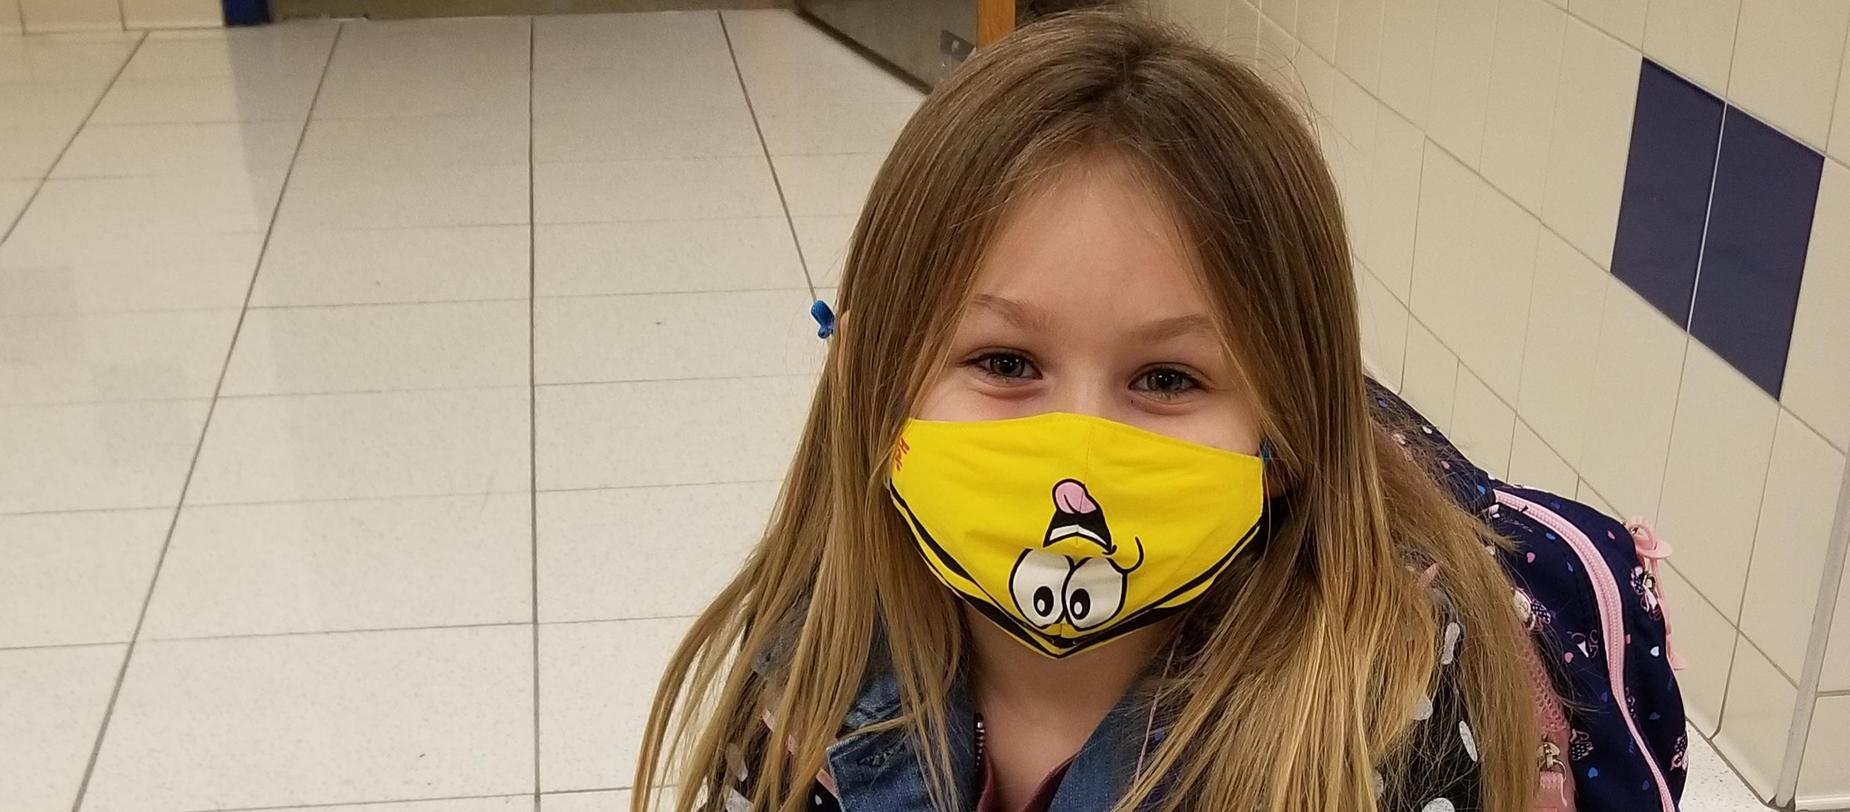 girl wearing a mask posing for the camera